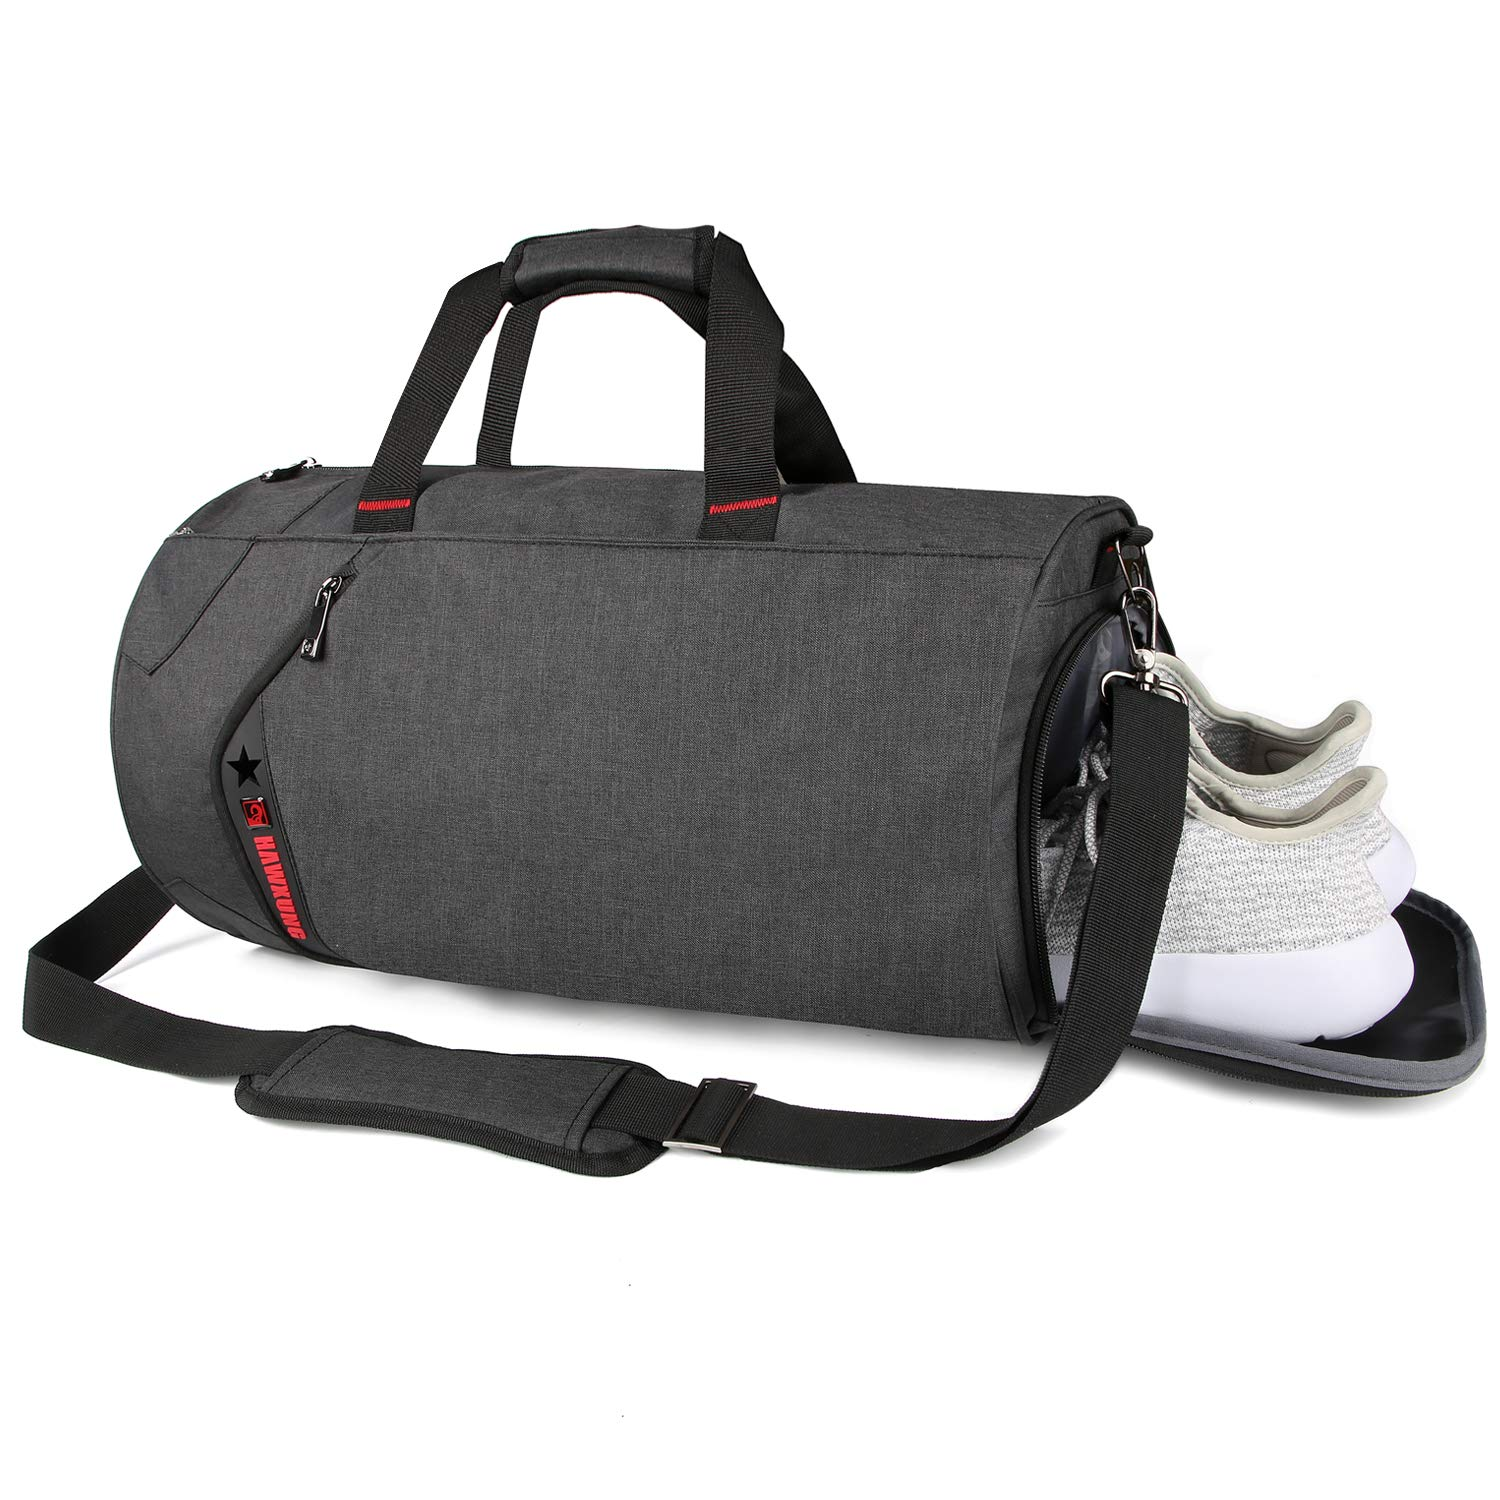 SCIONE Sports Gym Bag for Men Waterproof Travel Duffel Bag for Women with Wet Pocket Shoes Compartment Black